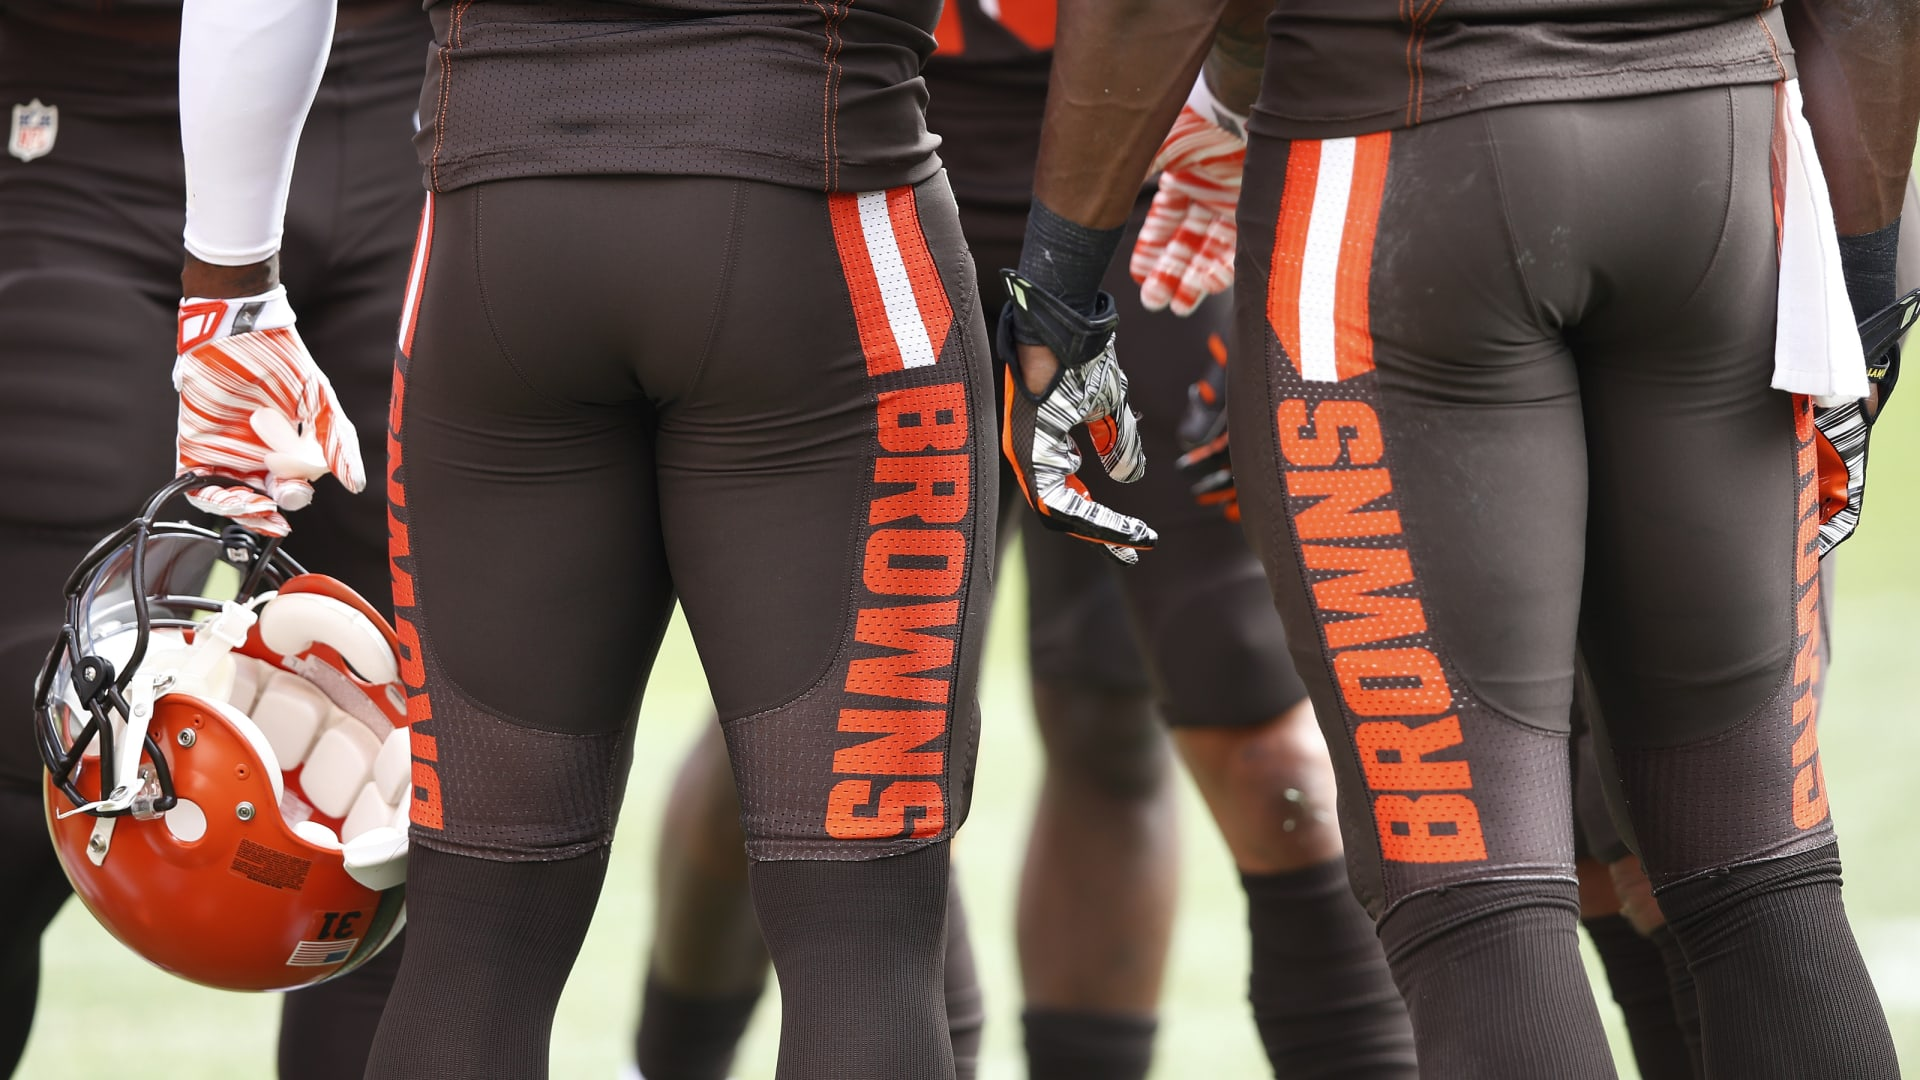 Report: Browns uniforms set to release April 15th